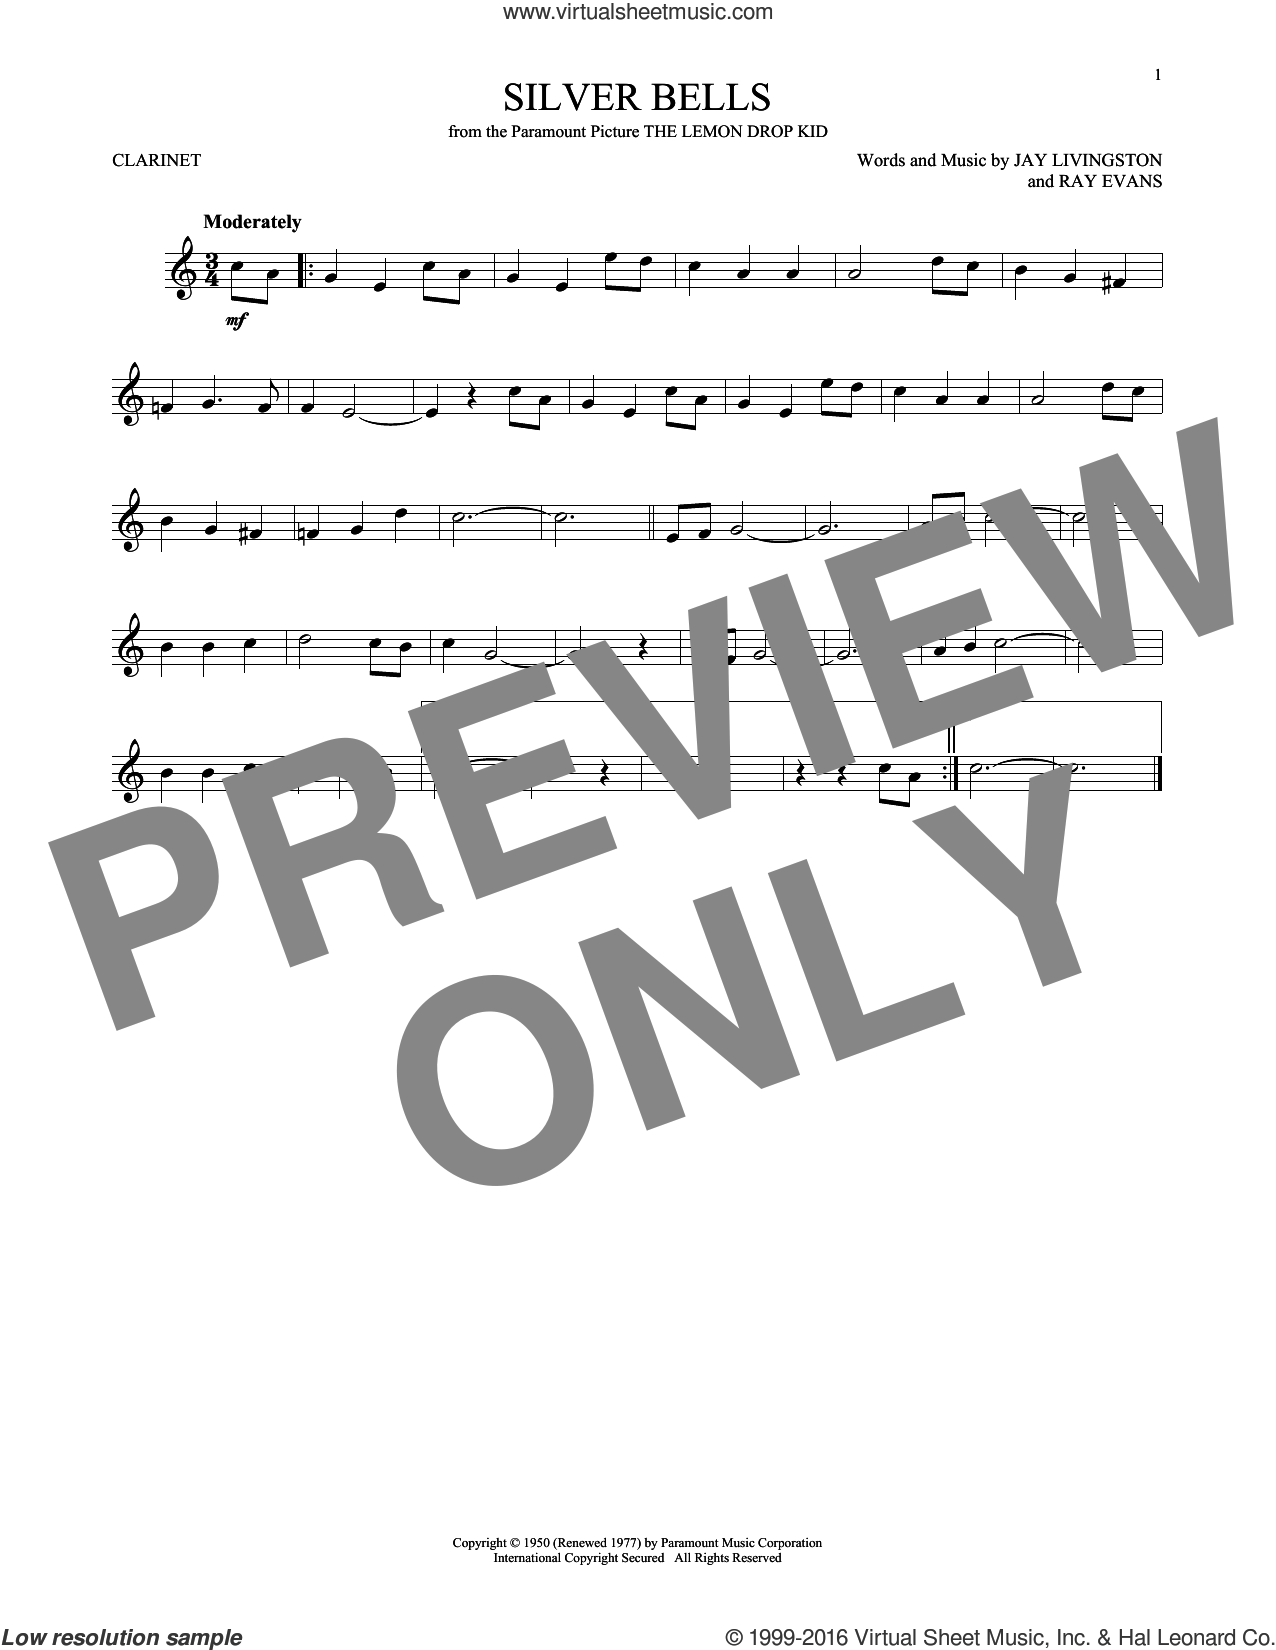 Silver Bells sheet music for clarinet solo by Jay Livingston, Jay Livingston & Ray Evans and Ray Evans, intermediate skill level